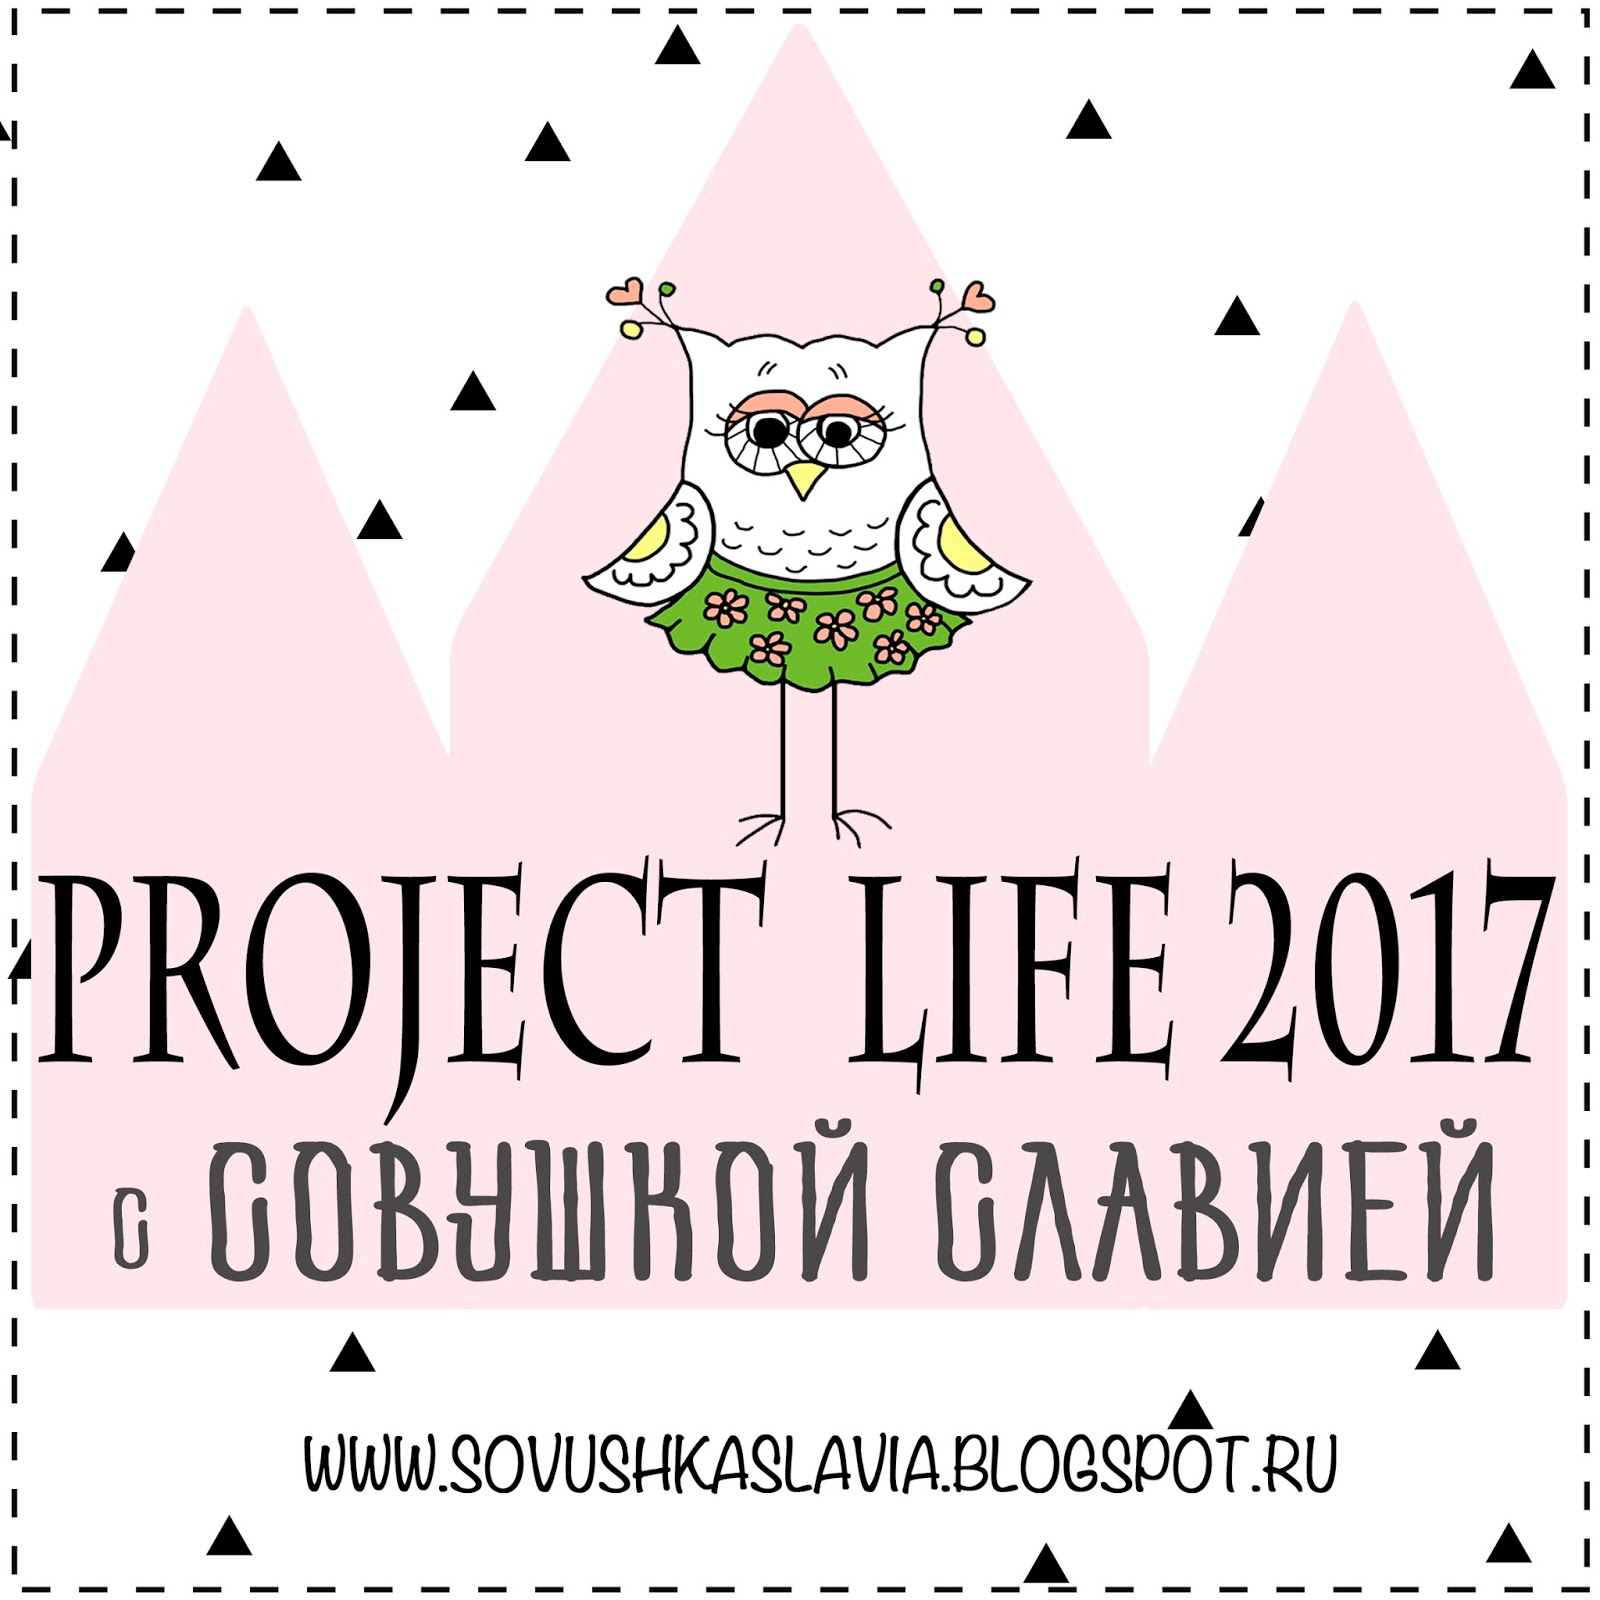 Project Life 2017